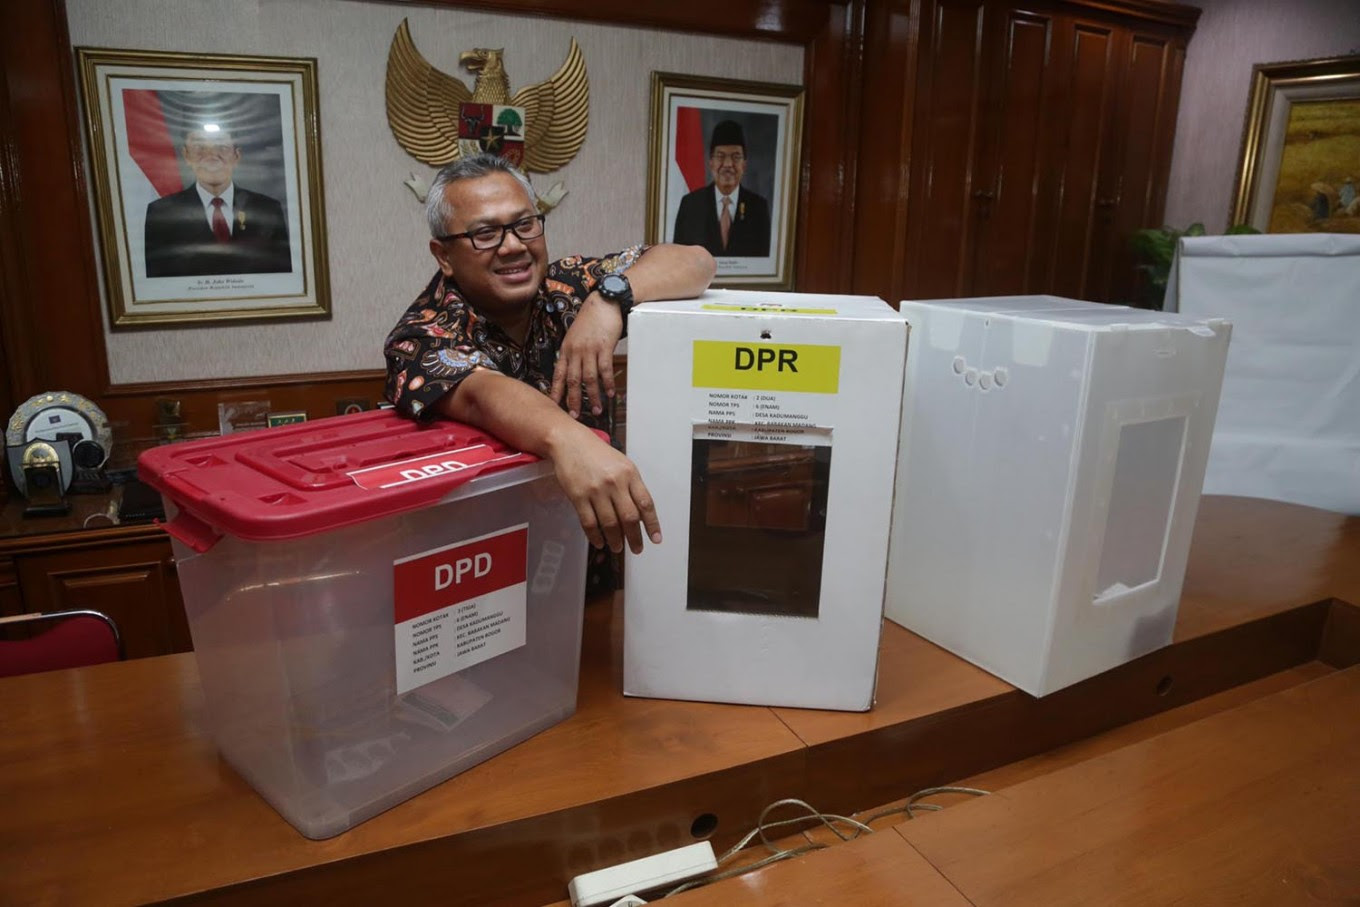 President calls on people to vote